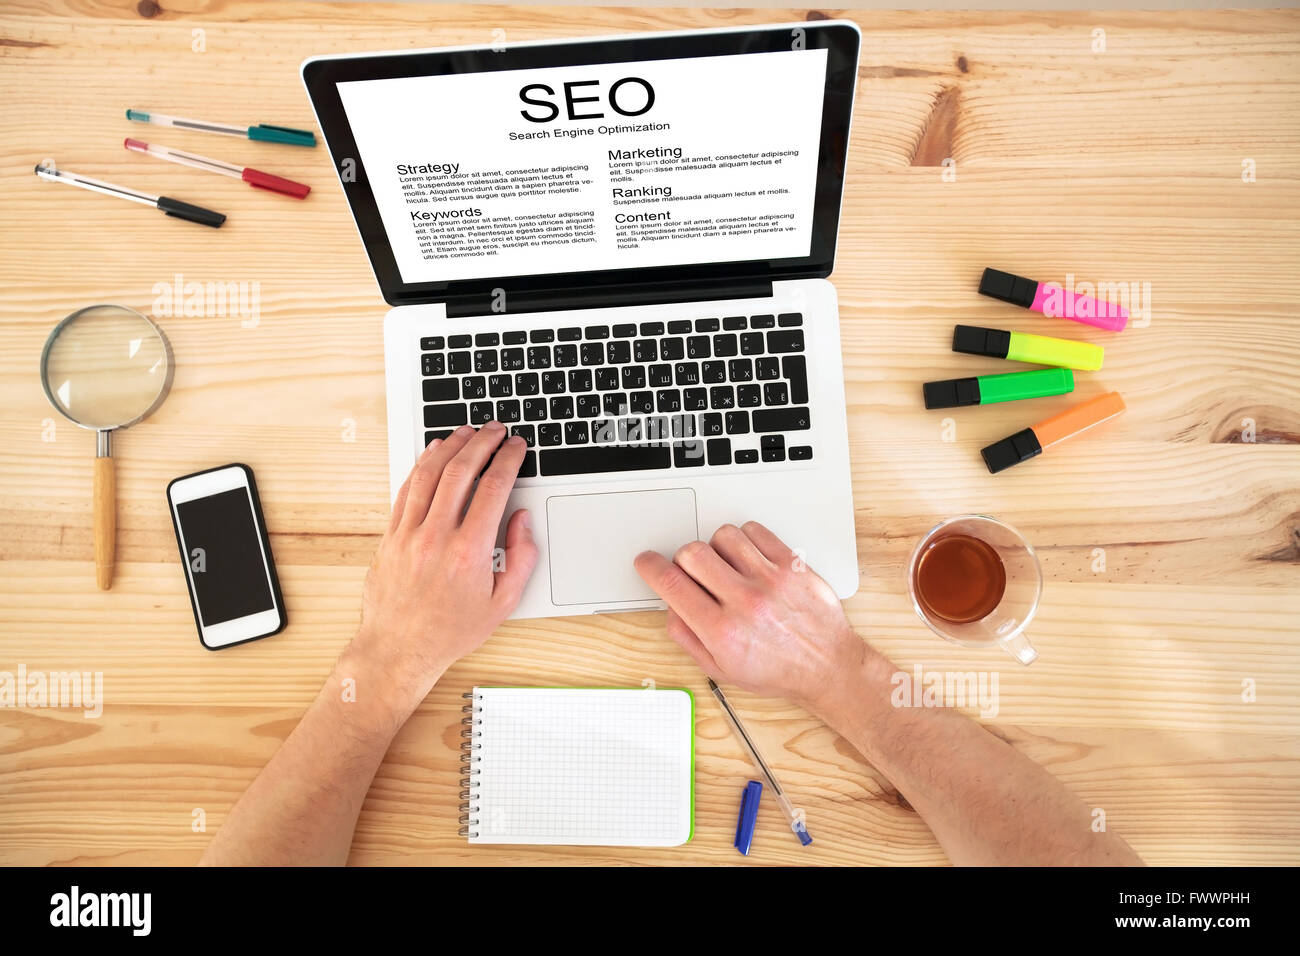 SEO concept on the screen of laptop, search engine optimization - Stock Image